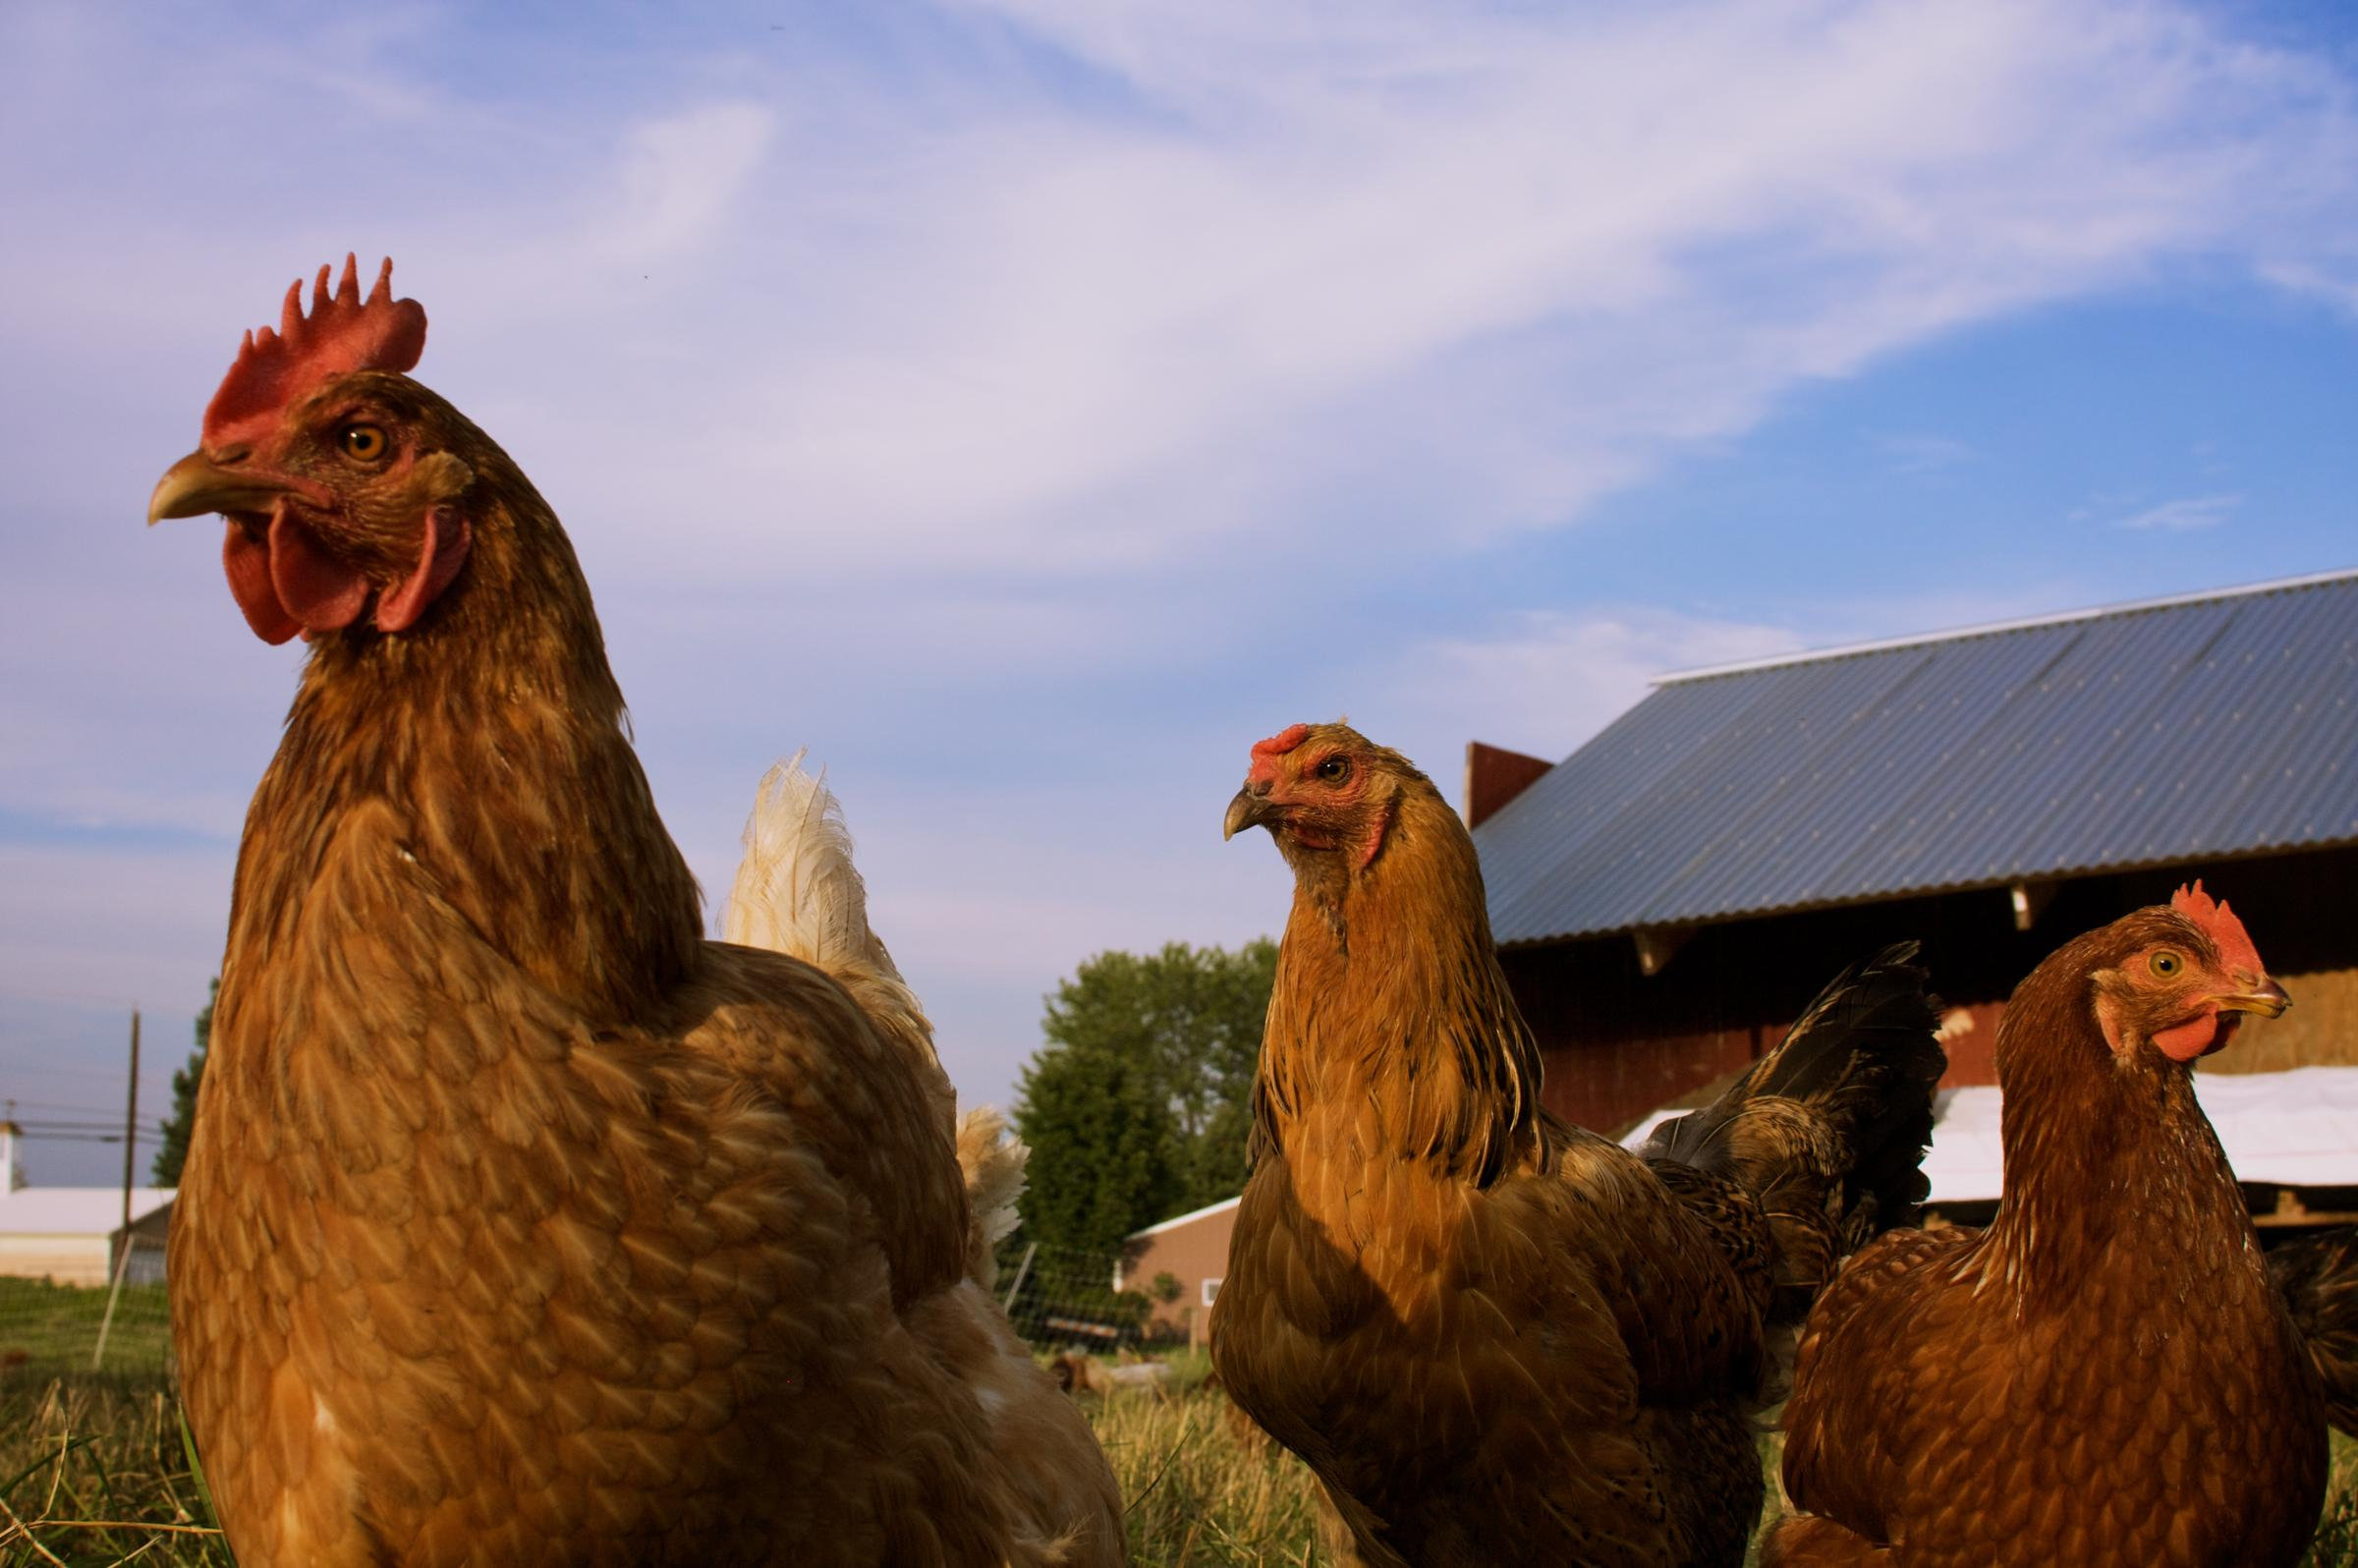 Kentucky reports avian influenza in Christian County poultry flock